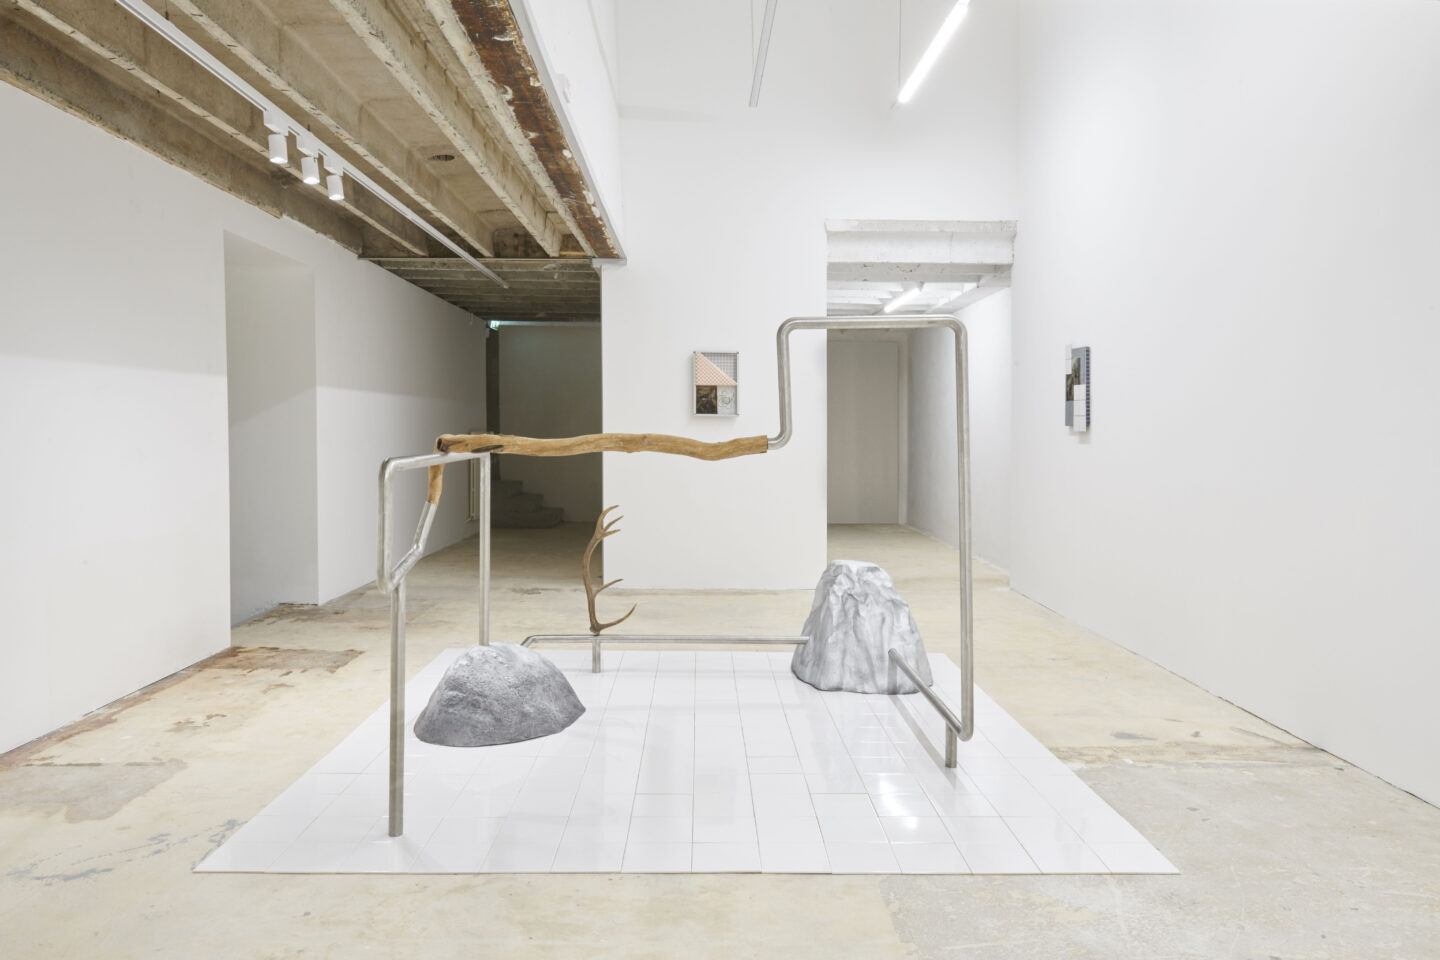 Exhibition View Vikenti Komitski Soloshow «Sea Level» at Fabienne Levy Gallery, Lausanne, 2020 / Courtesy: the artist and Fabienne Levy Gallery